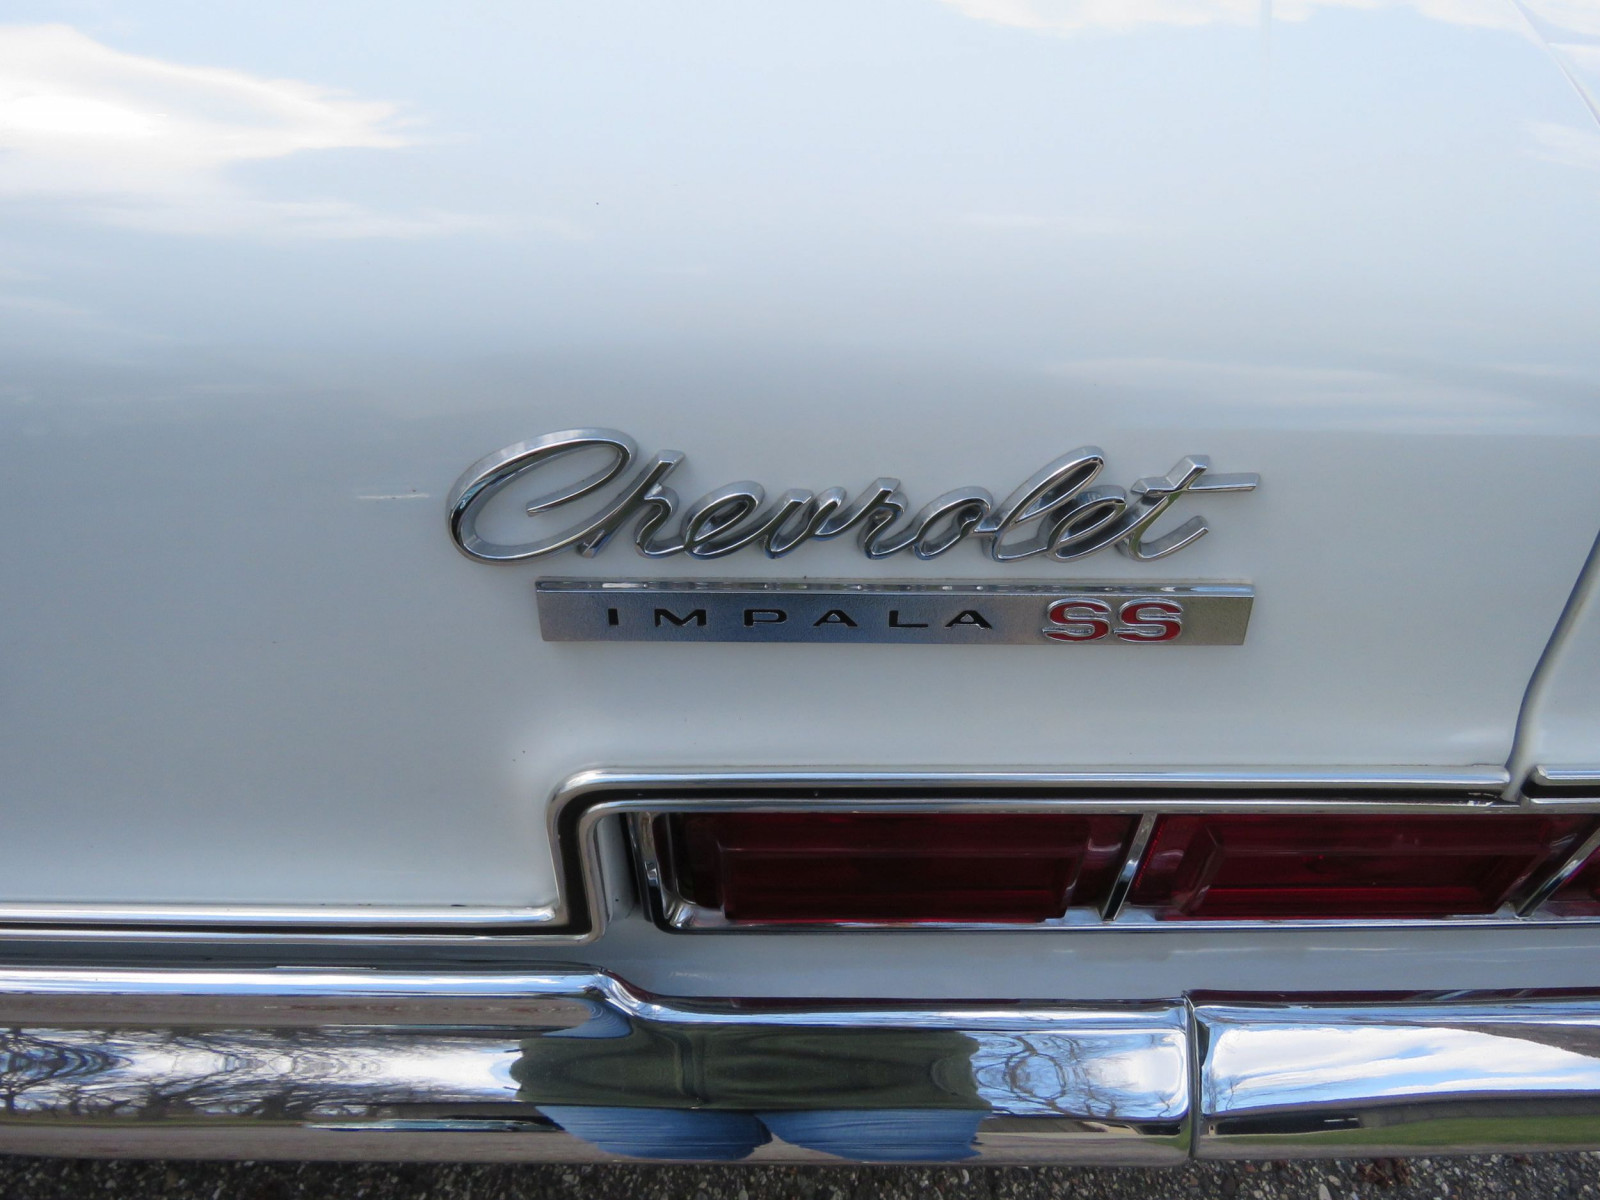 1966 Chevrolet Impala SS Convertible - Image 9